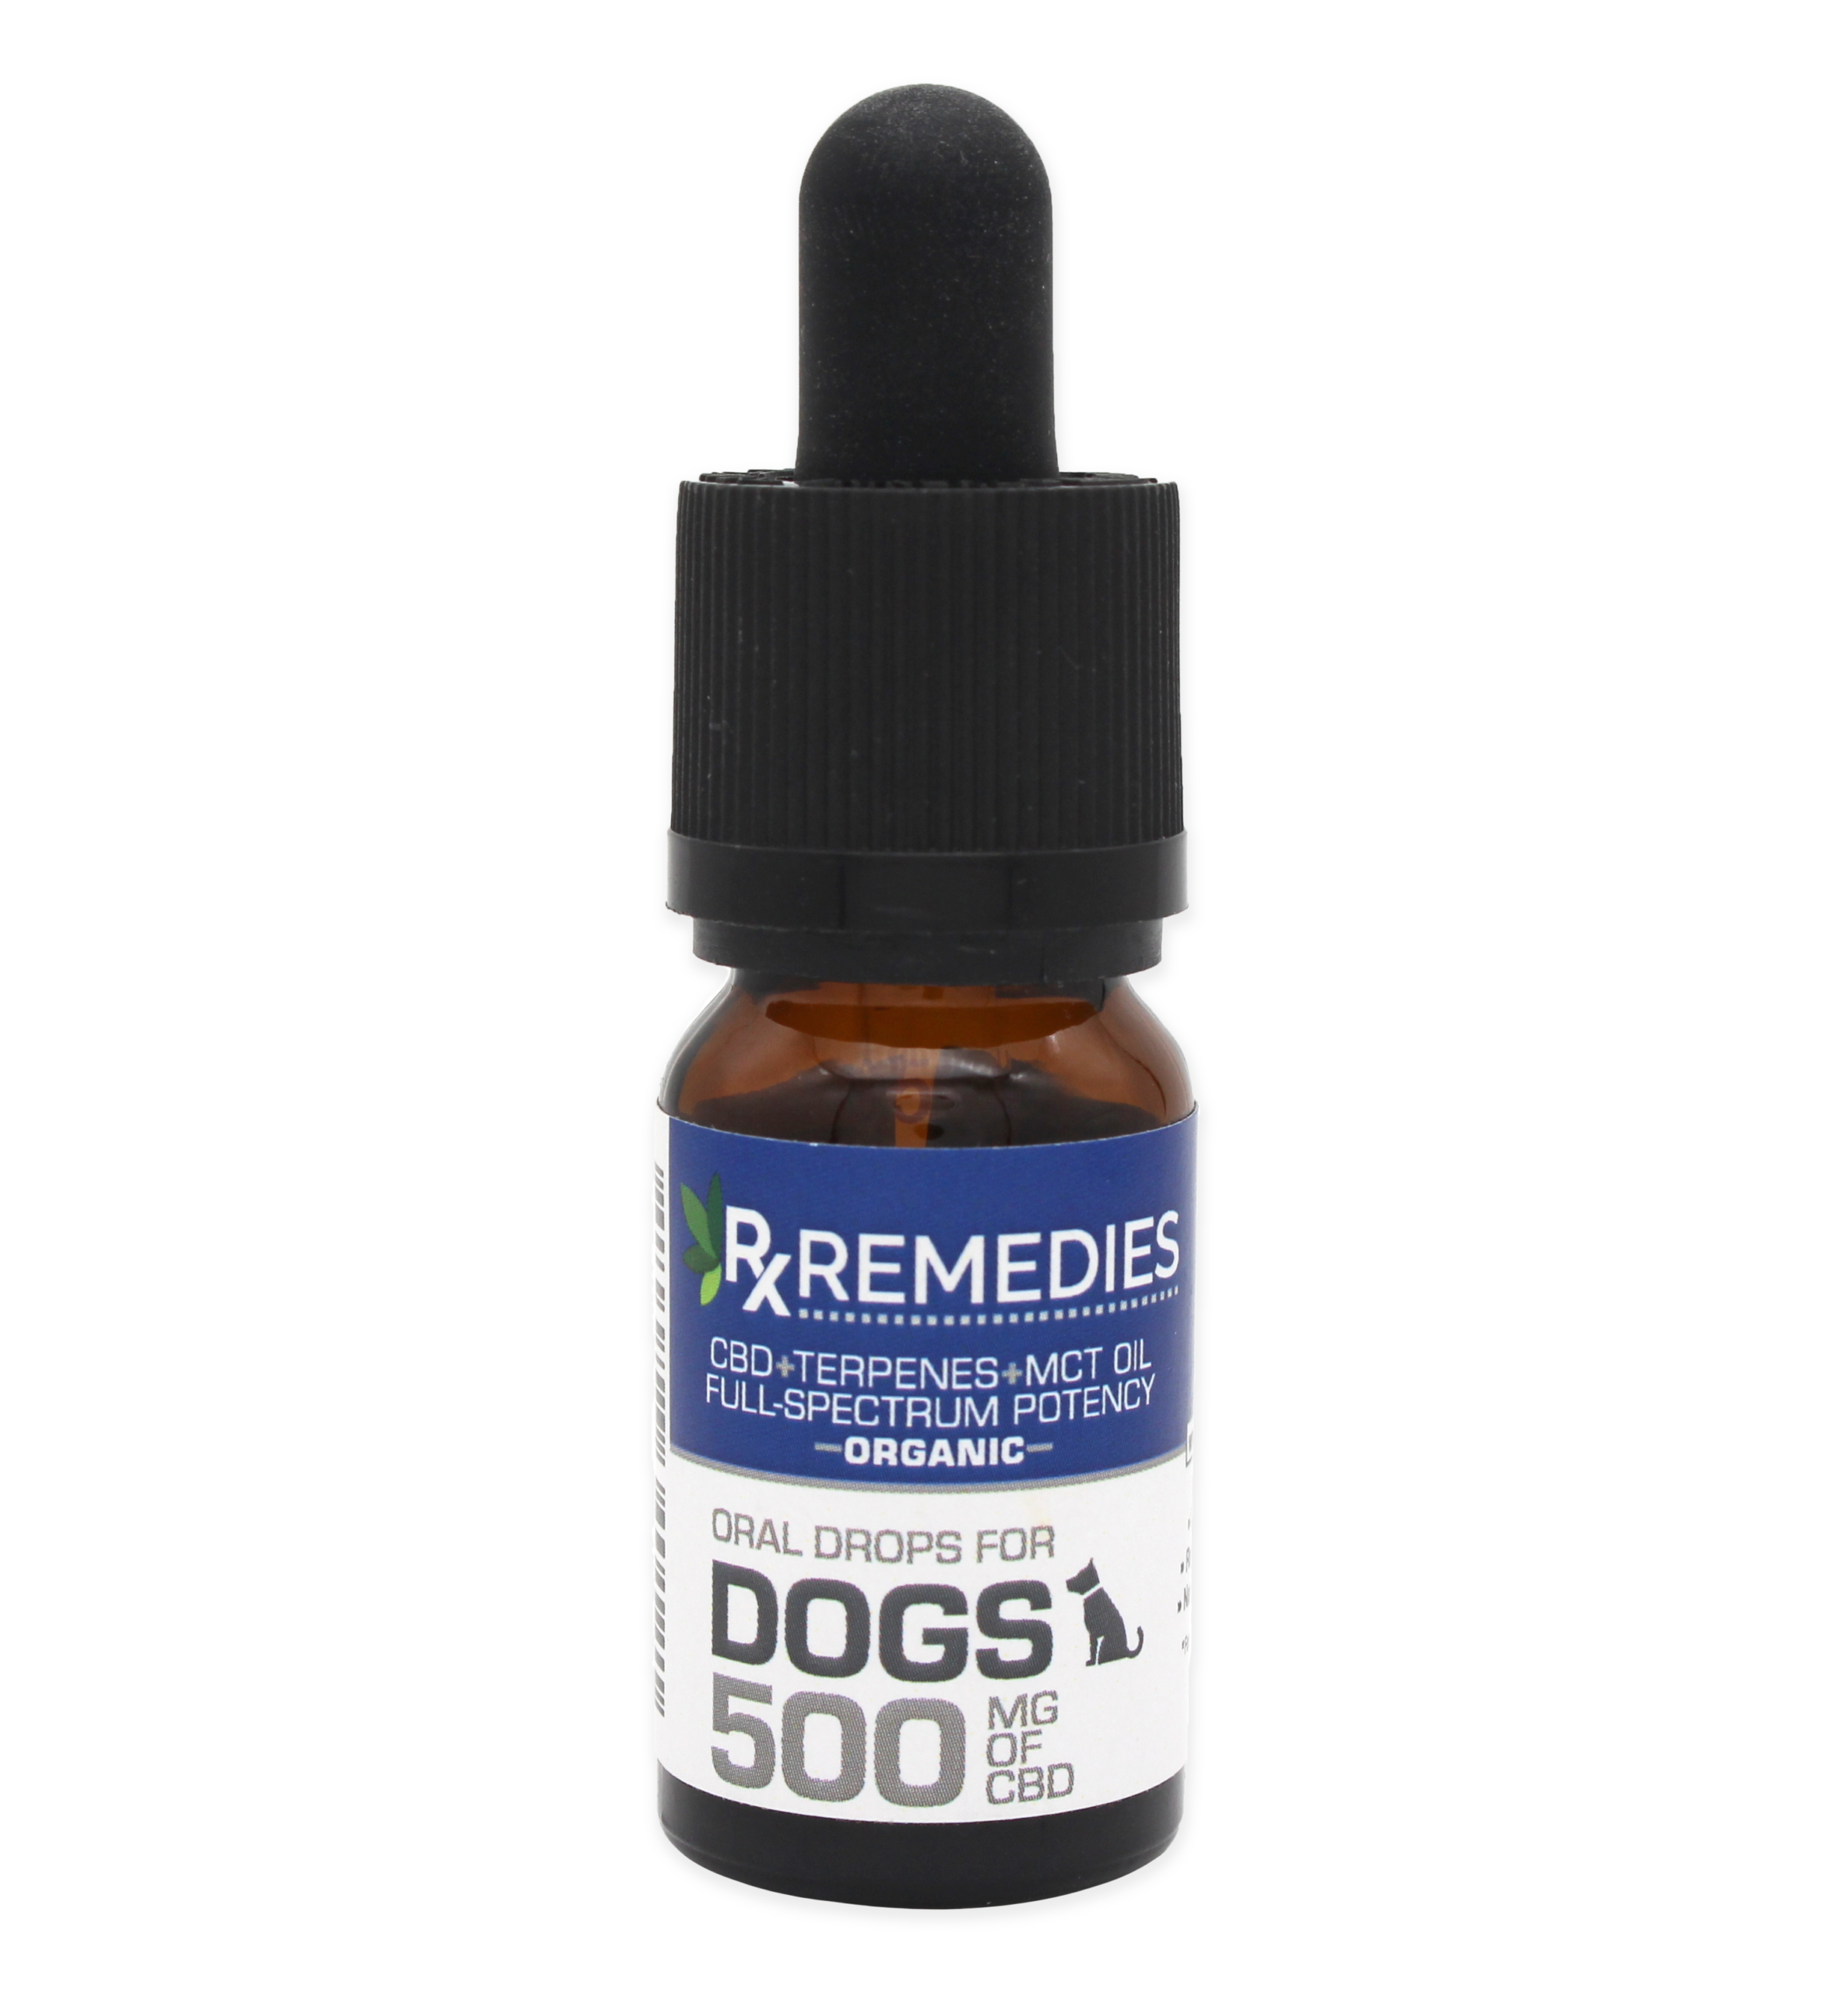 Rx Remedies, Oral Drops for Dogs, 500mg/10mL